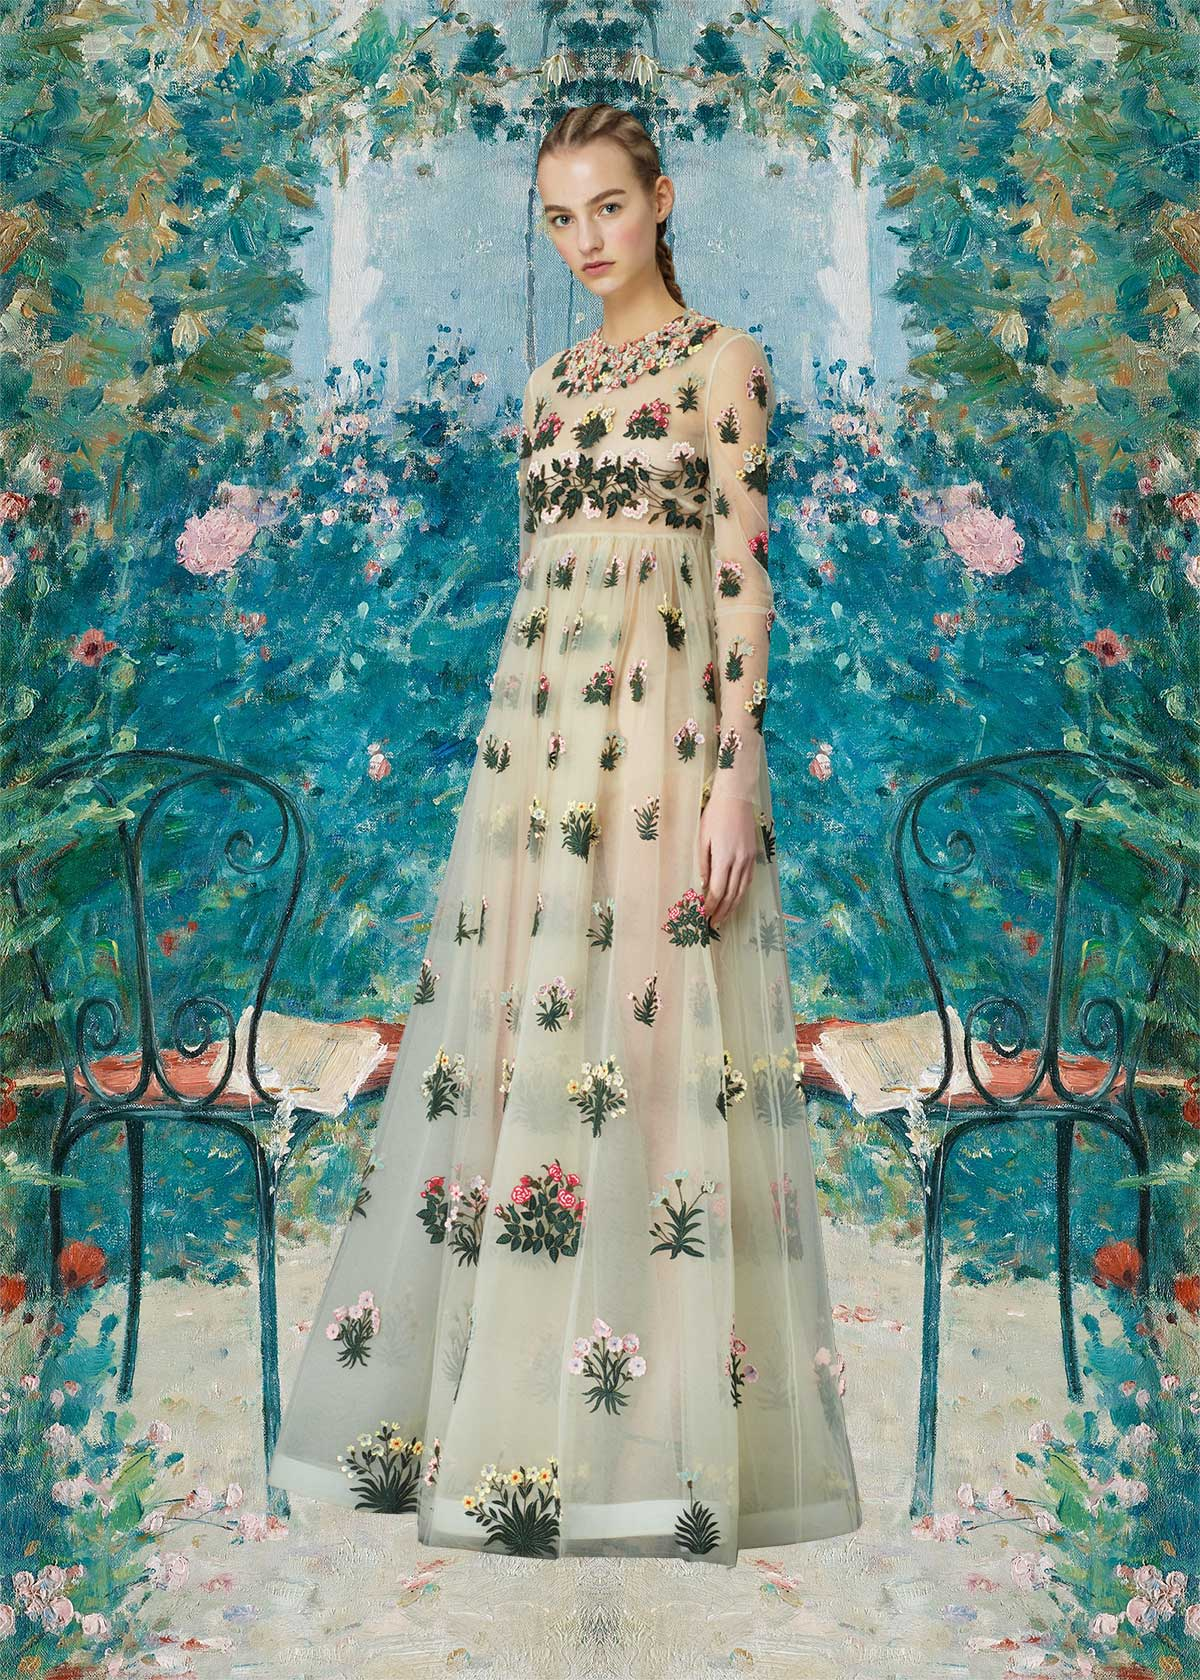 The Art Of Valentino Art People Gallery